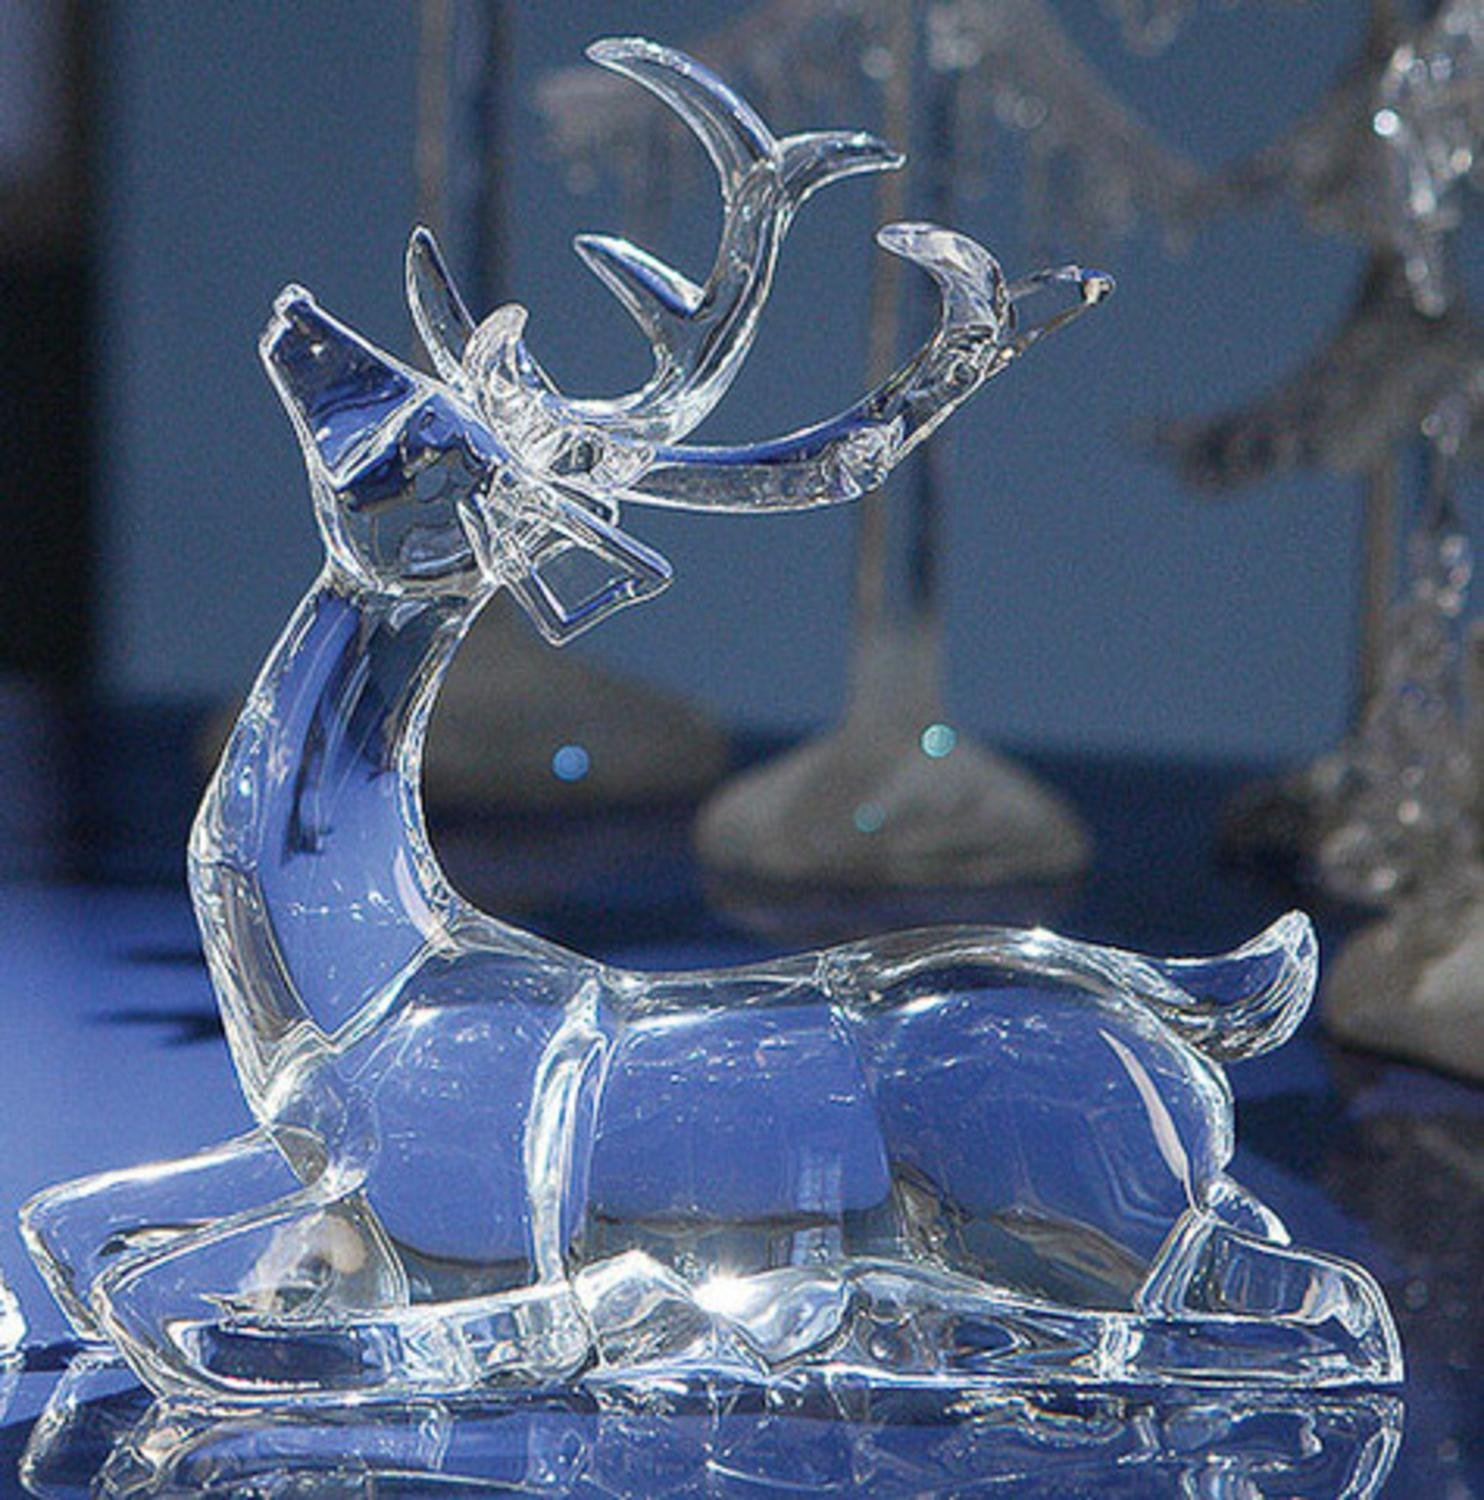 Icy Clear Acrylic Crystal Deer Sitting Decorative Figurines Set of 4 - http://christmastablescapedecor.com/